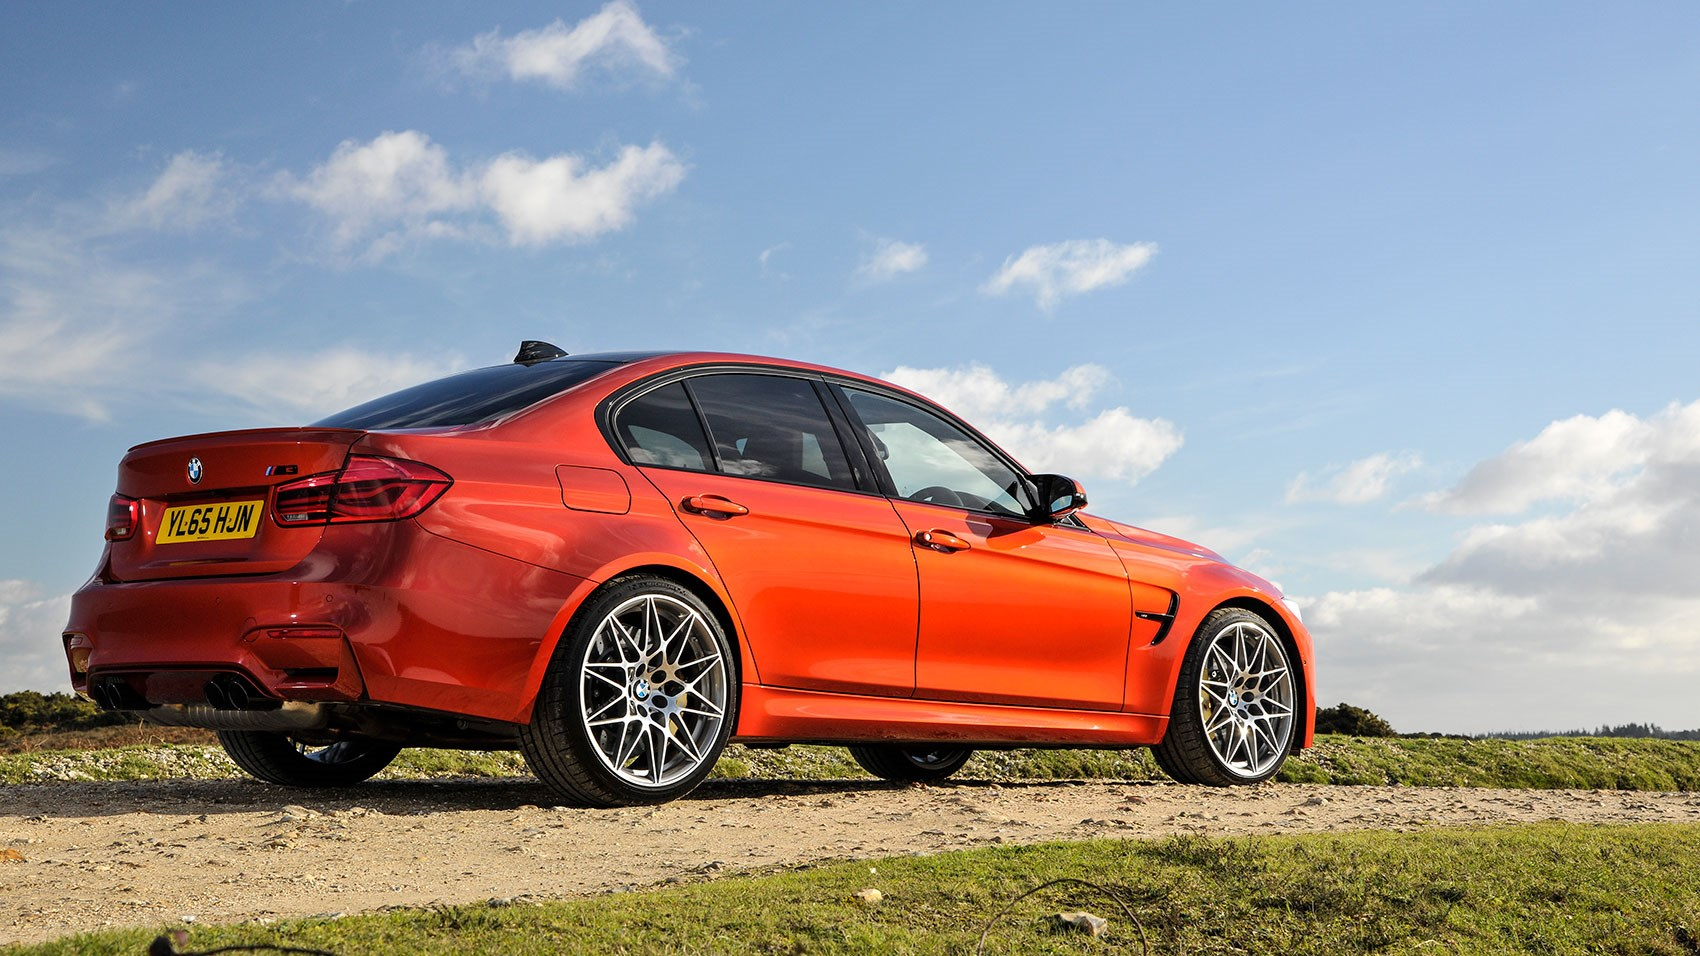 hight resolution of  20in wheels standard on competition pack bmw m3